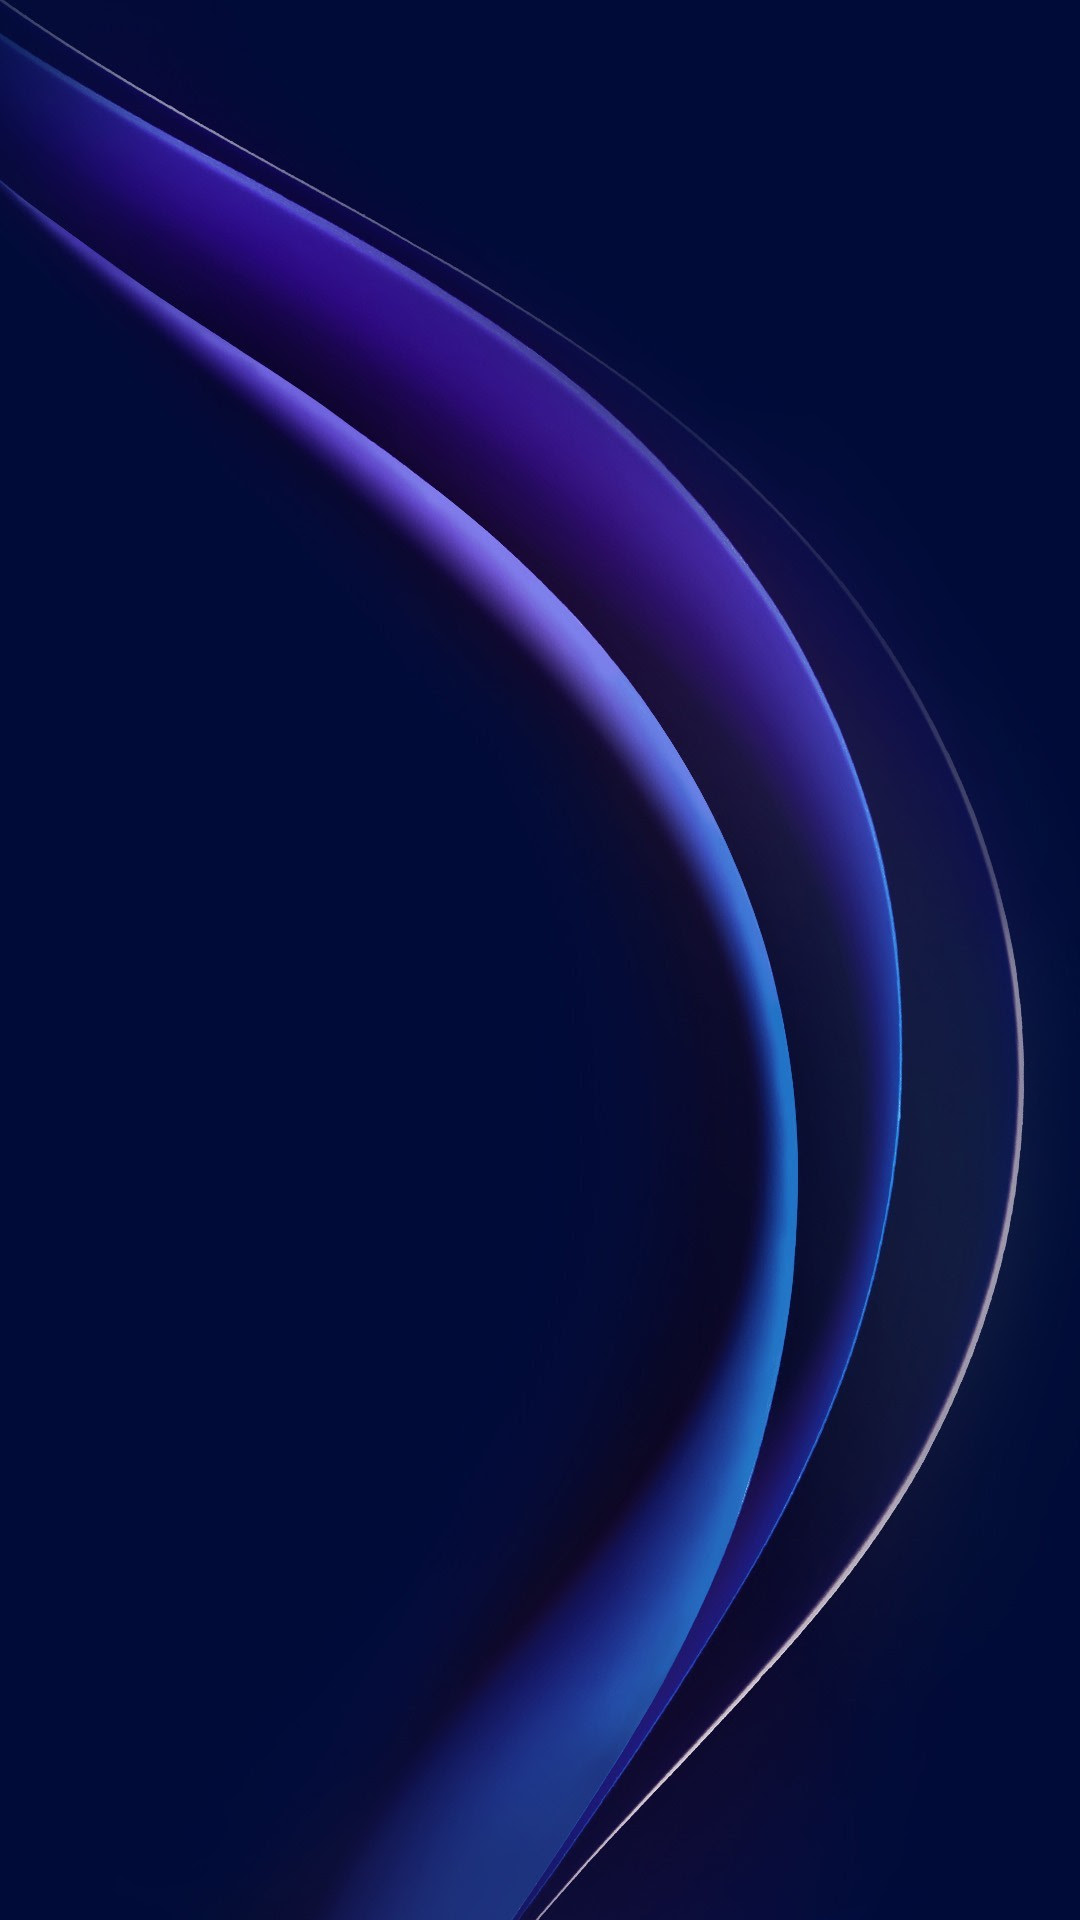 Unduh 430 Wallpaper For Android HD Paling Keren